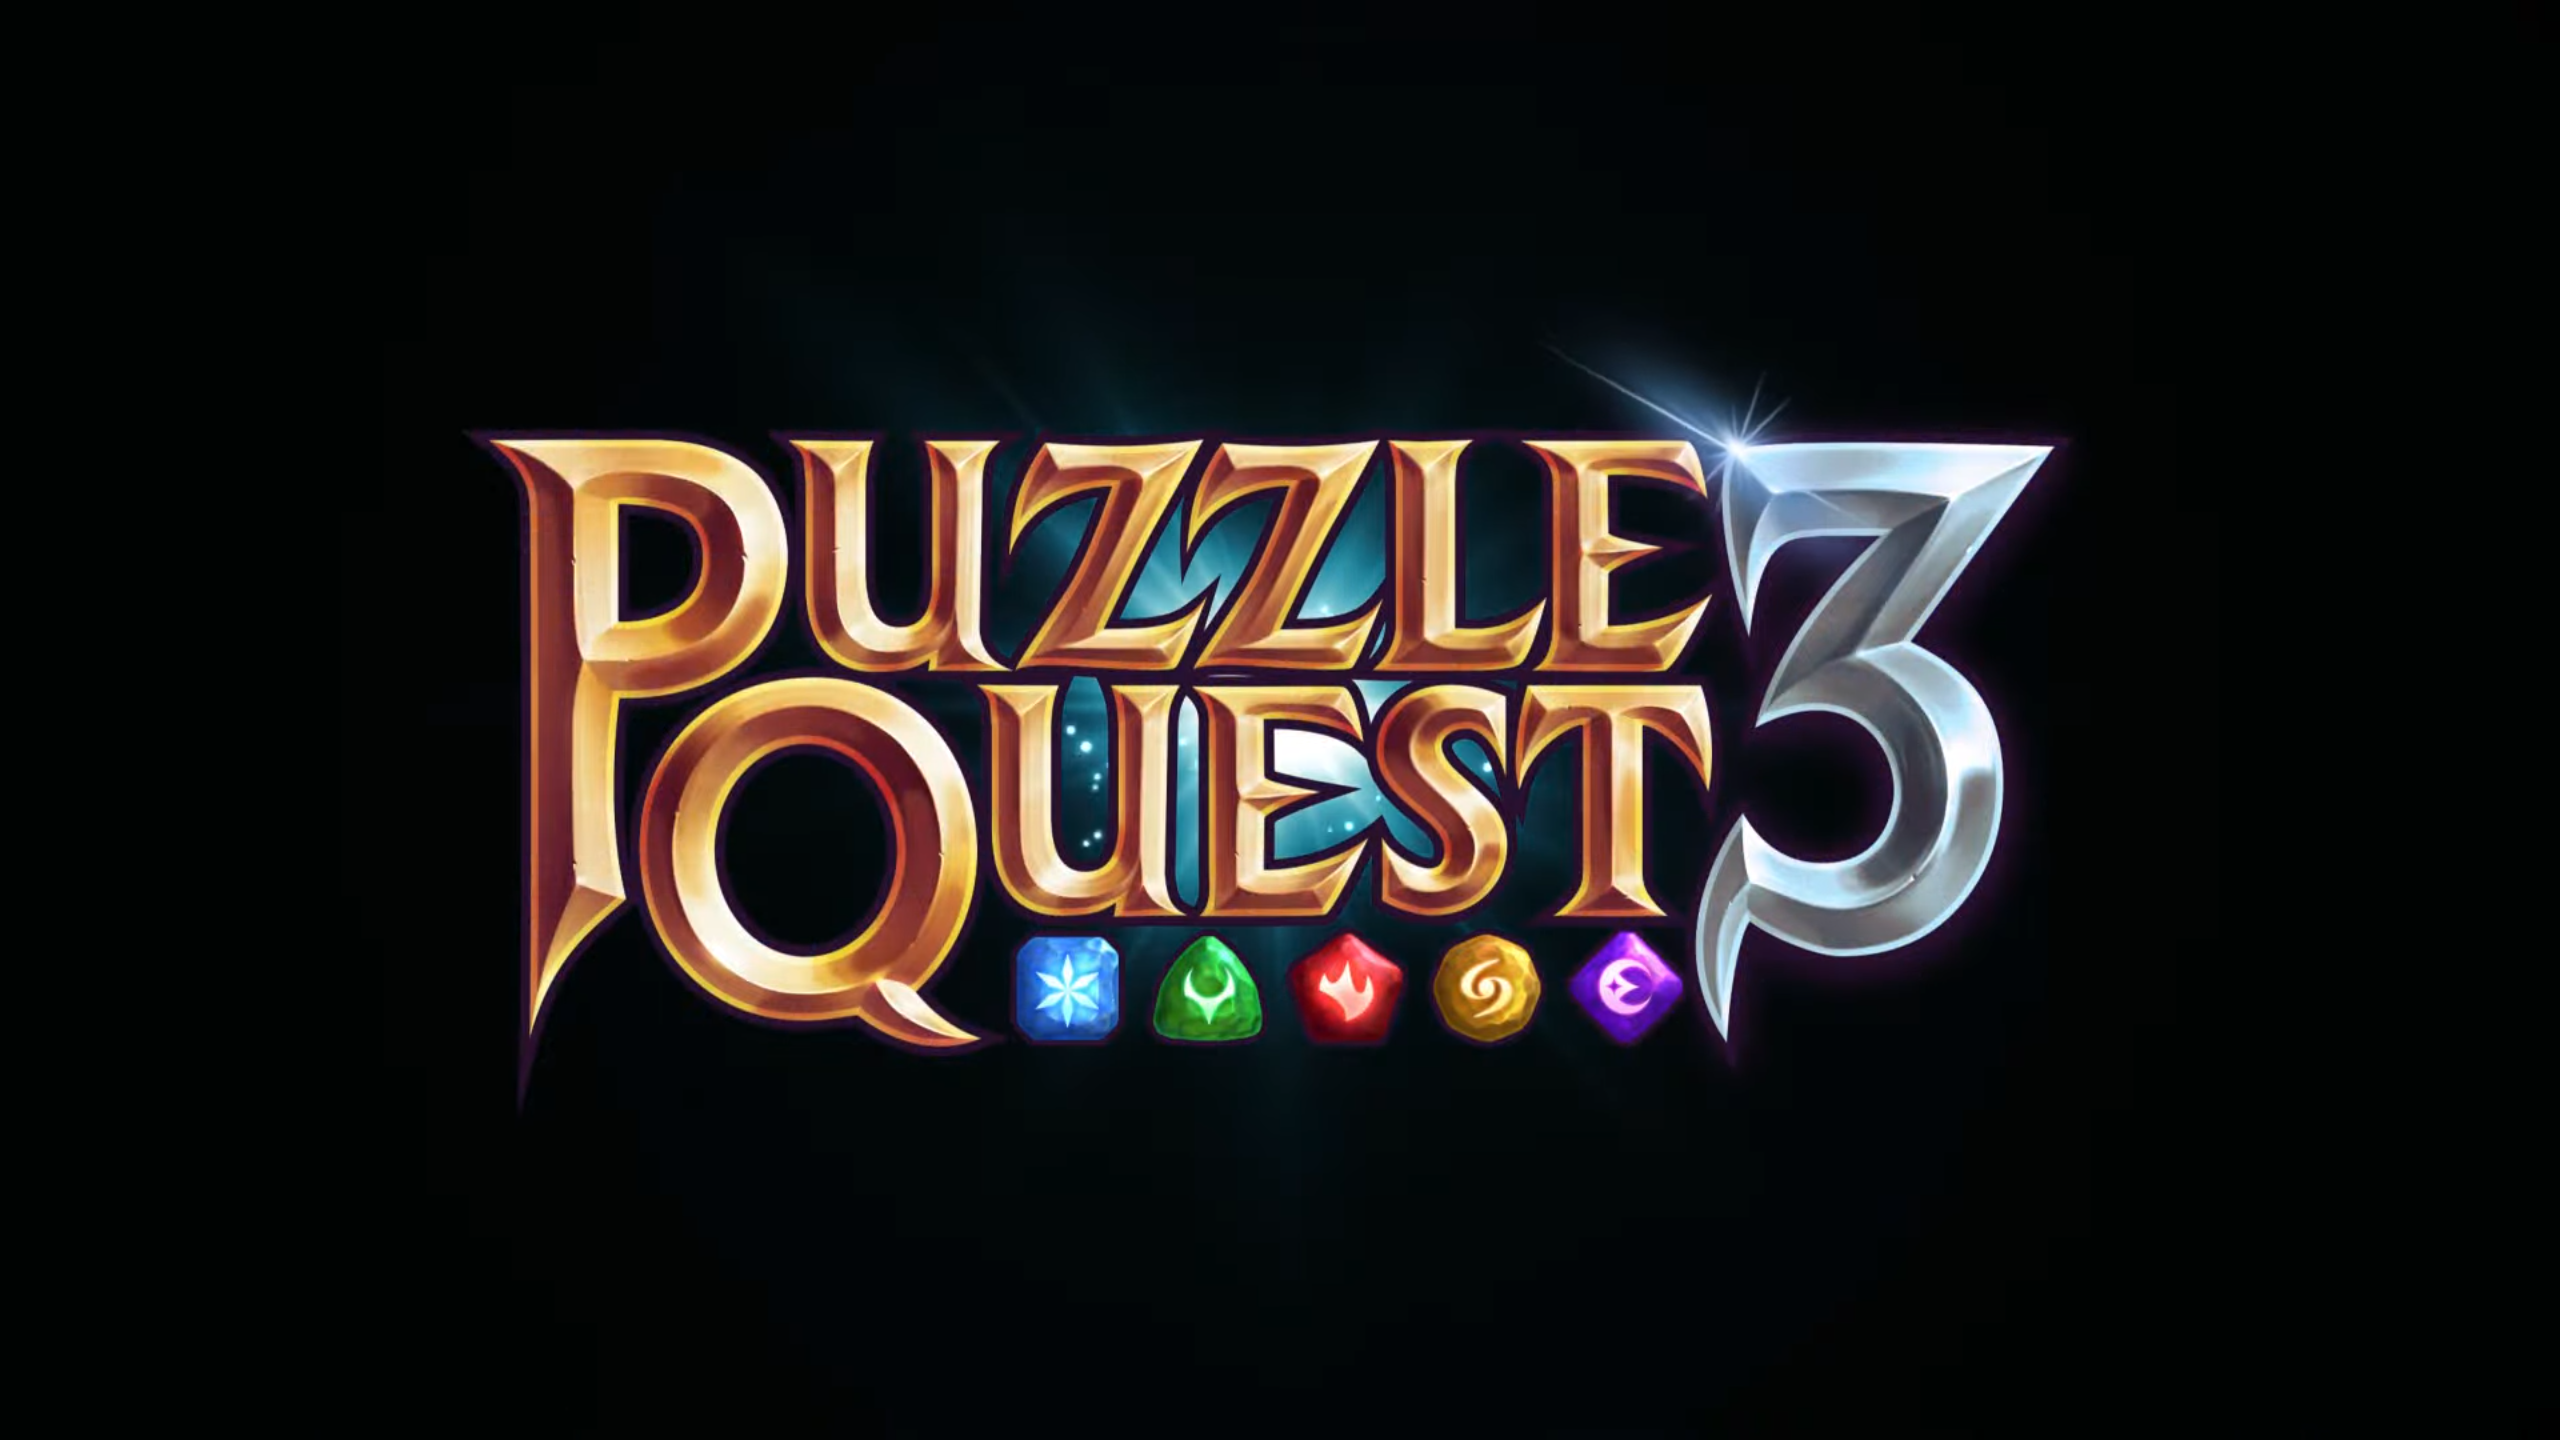 Puzzle Quest 3 is coming to mobile and PC later this year, courtesy of 505 Games thumbnail